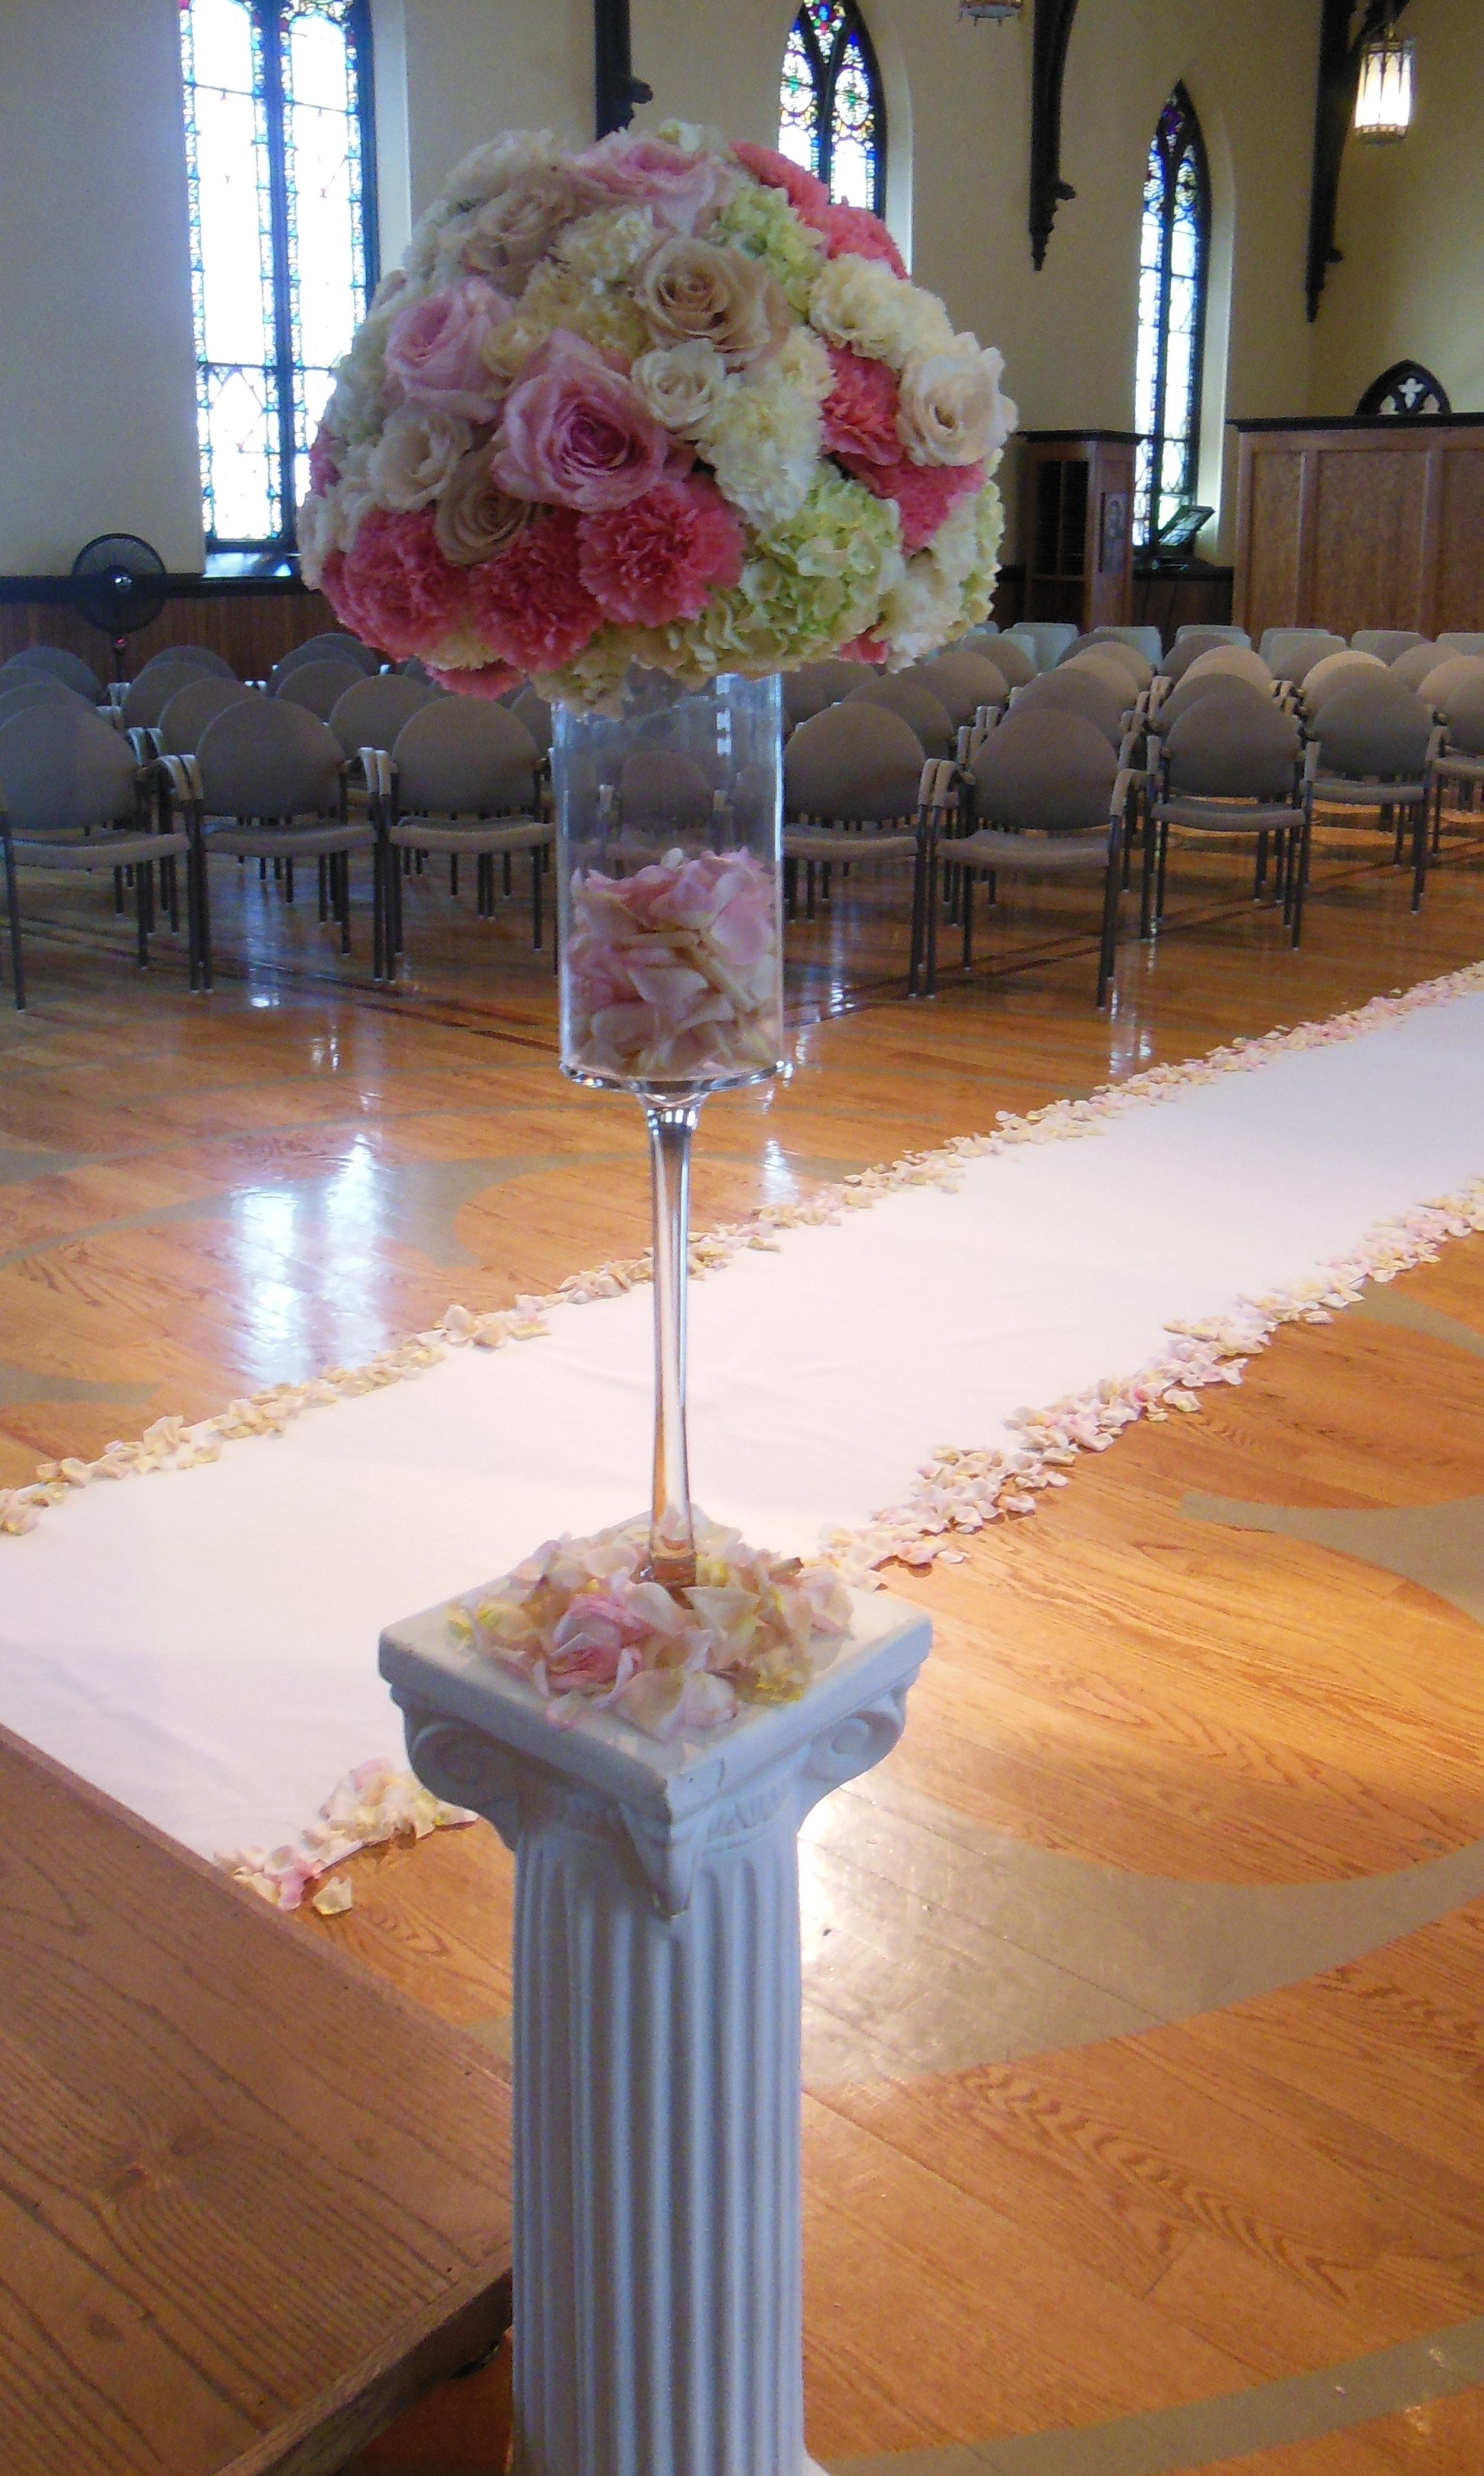 stemmed vase with a pave of vintage hydrangea roses and carnations